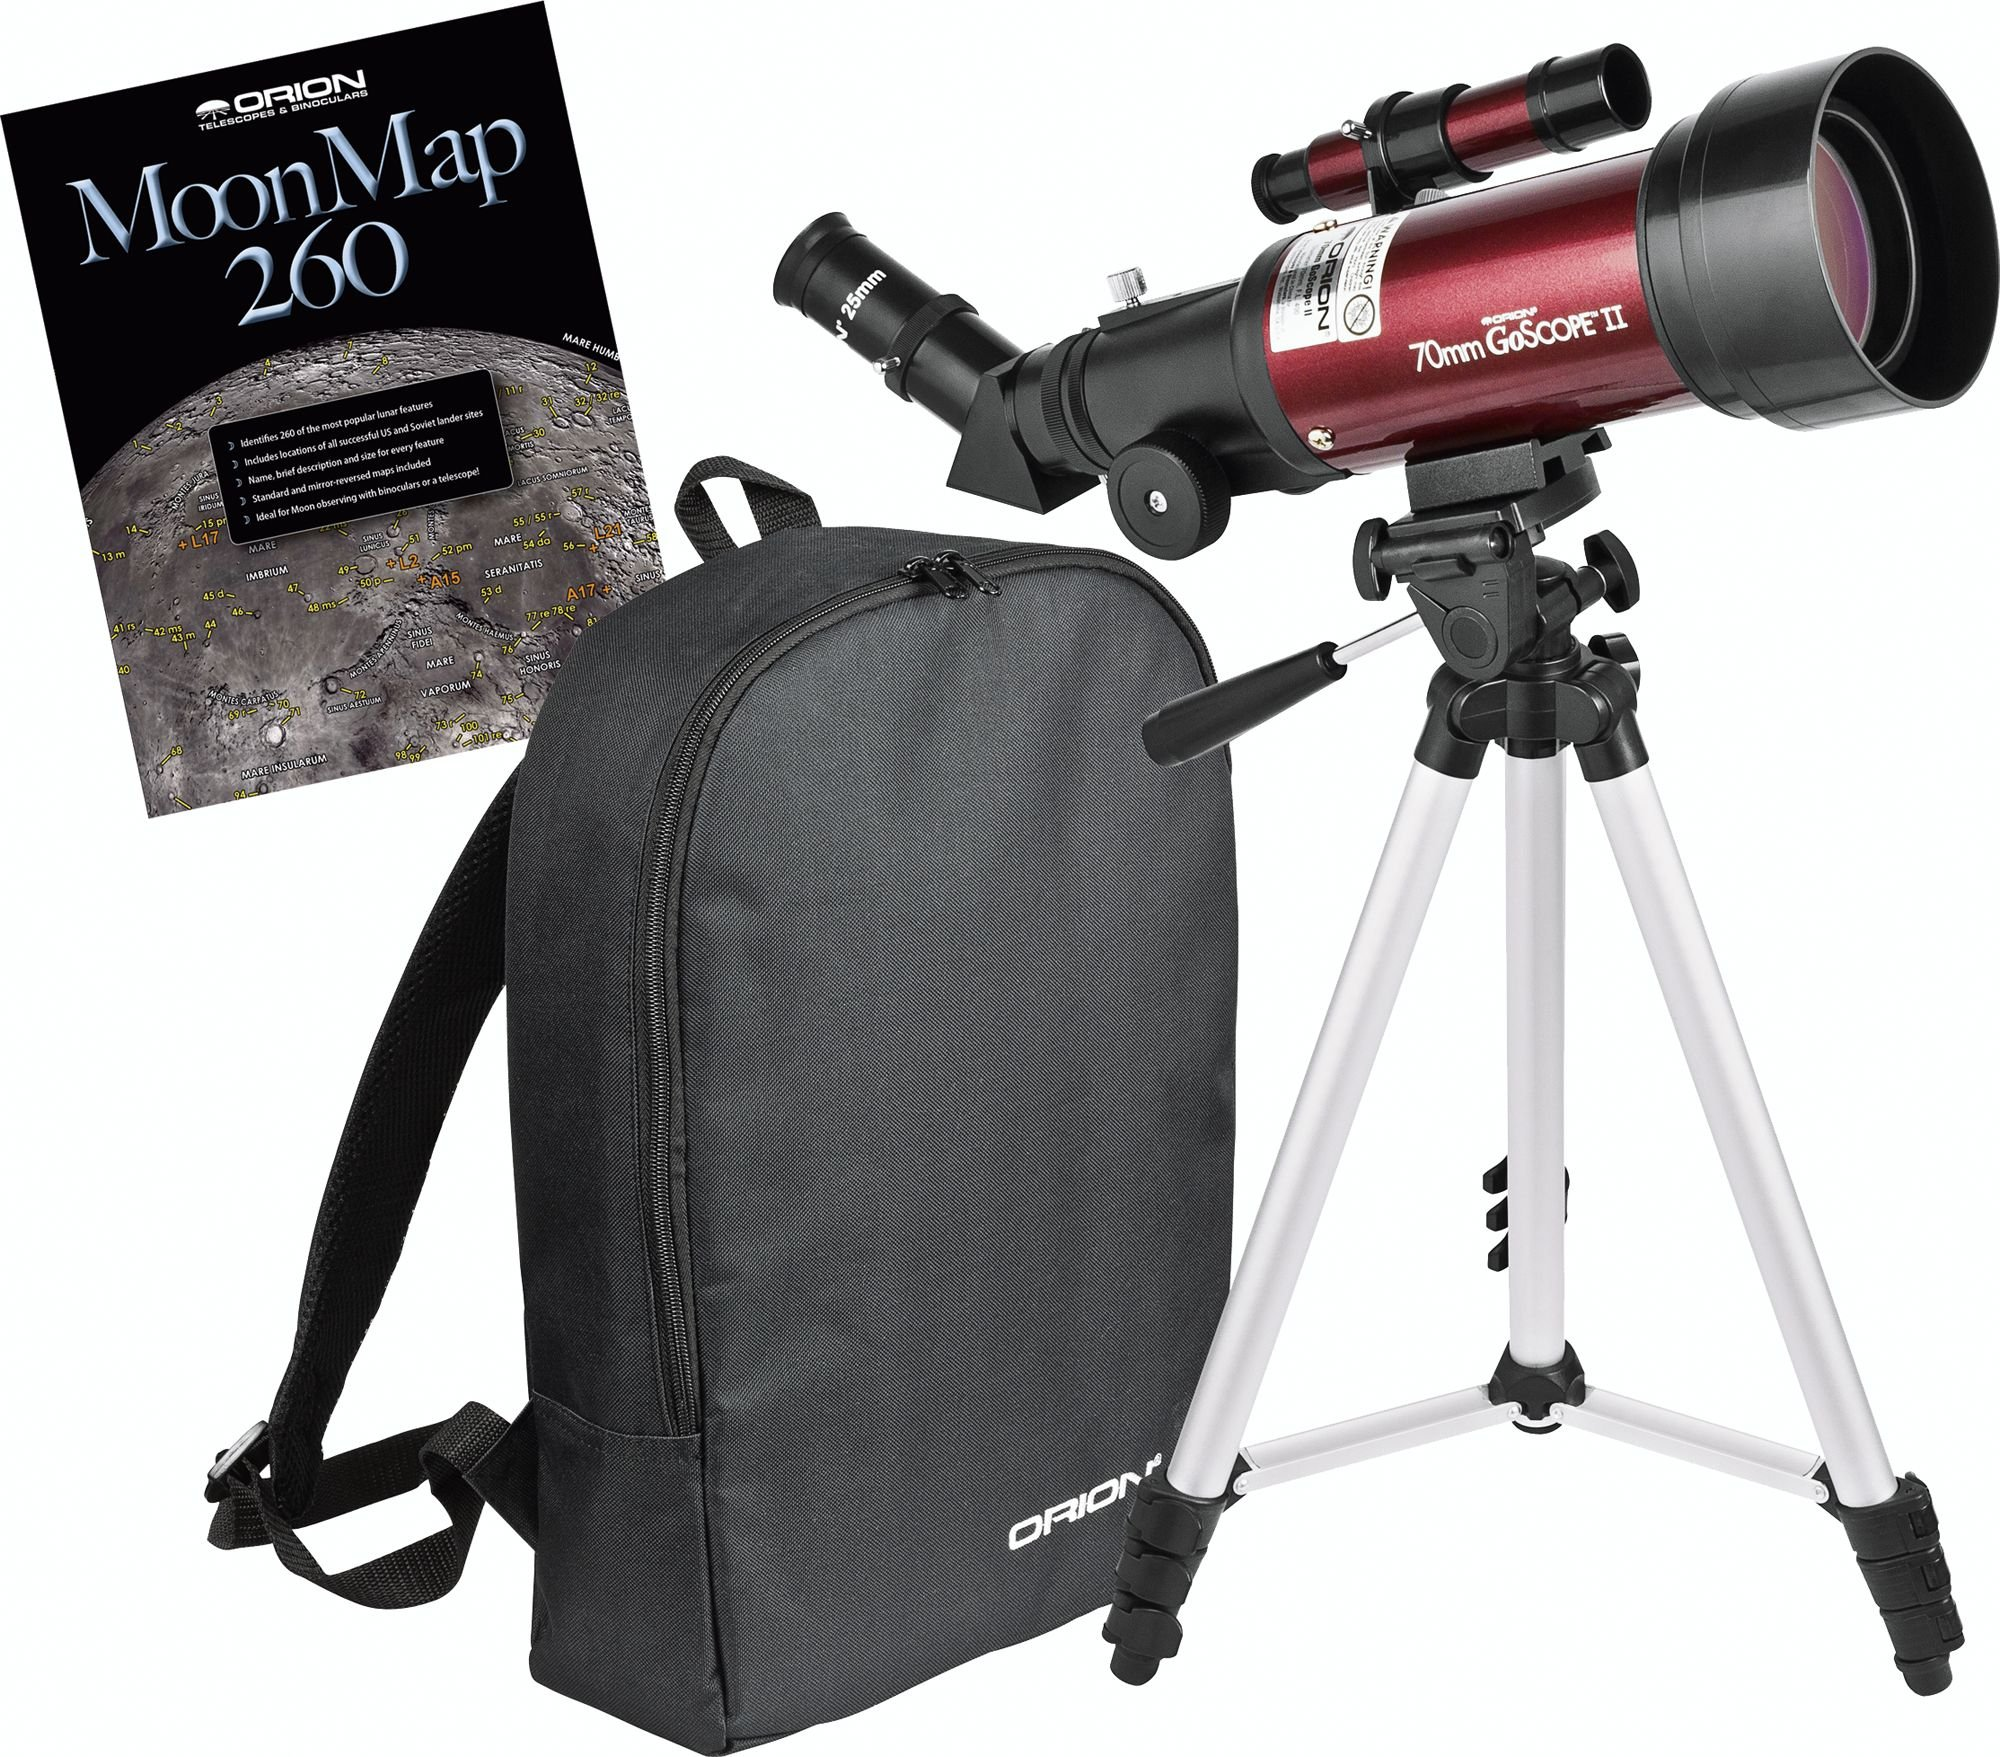 Orion 10034 GoScope II 70mm Refractor Travel Telescope Moon Kit (Burgundy) by Orion